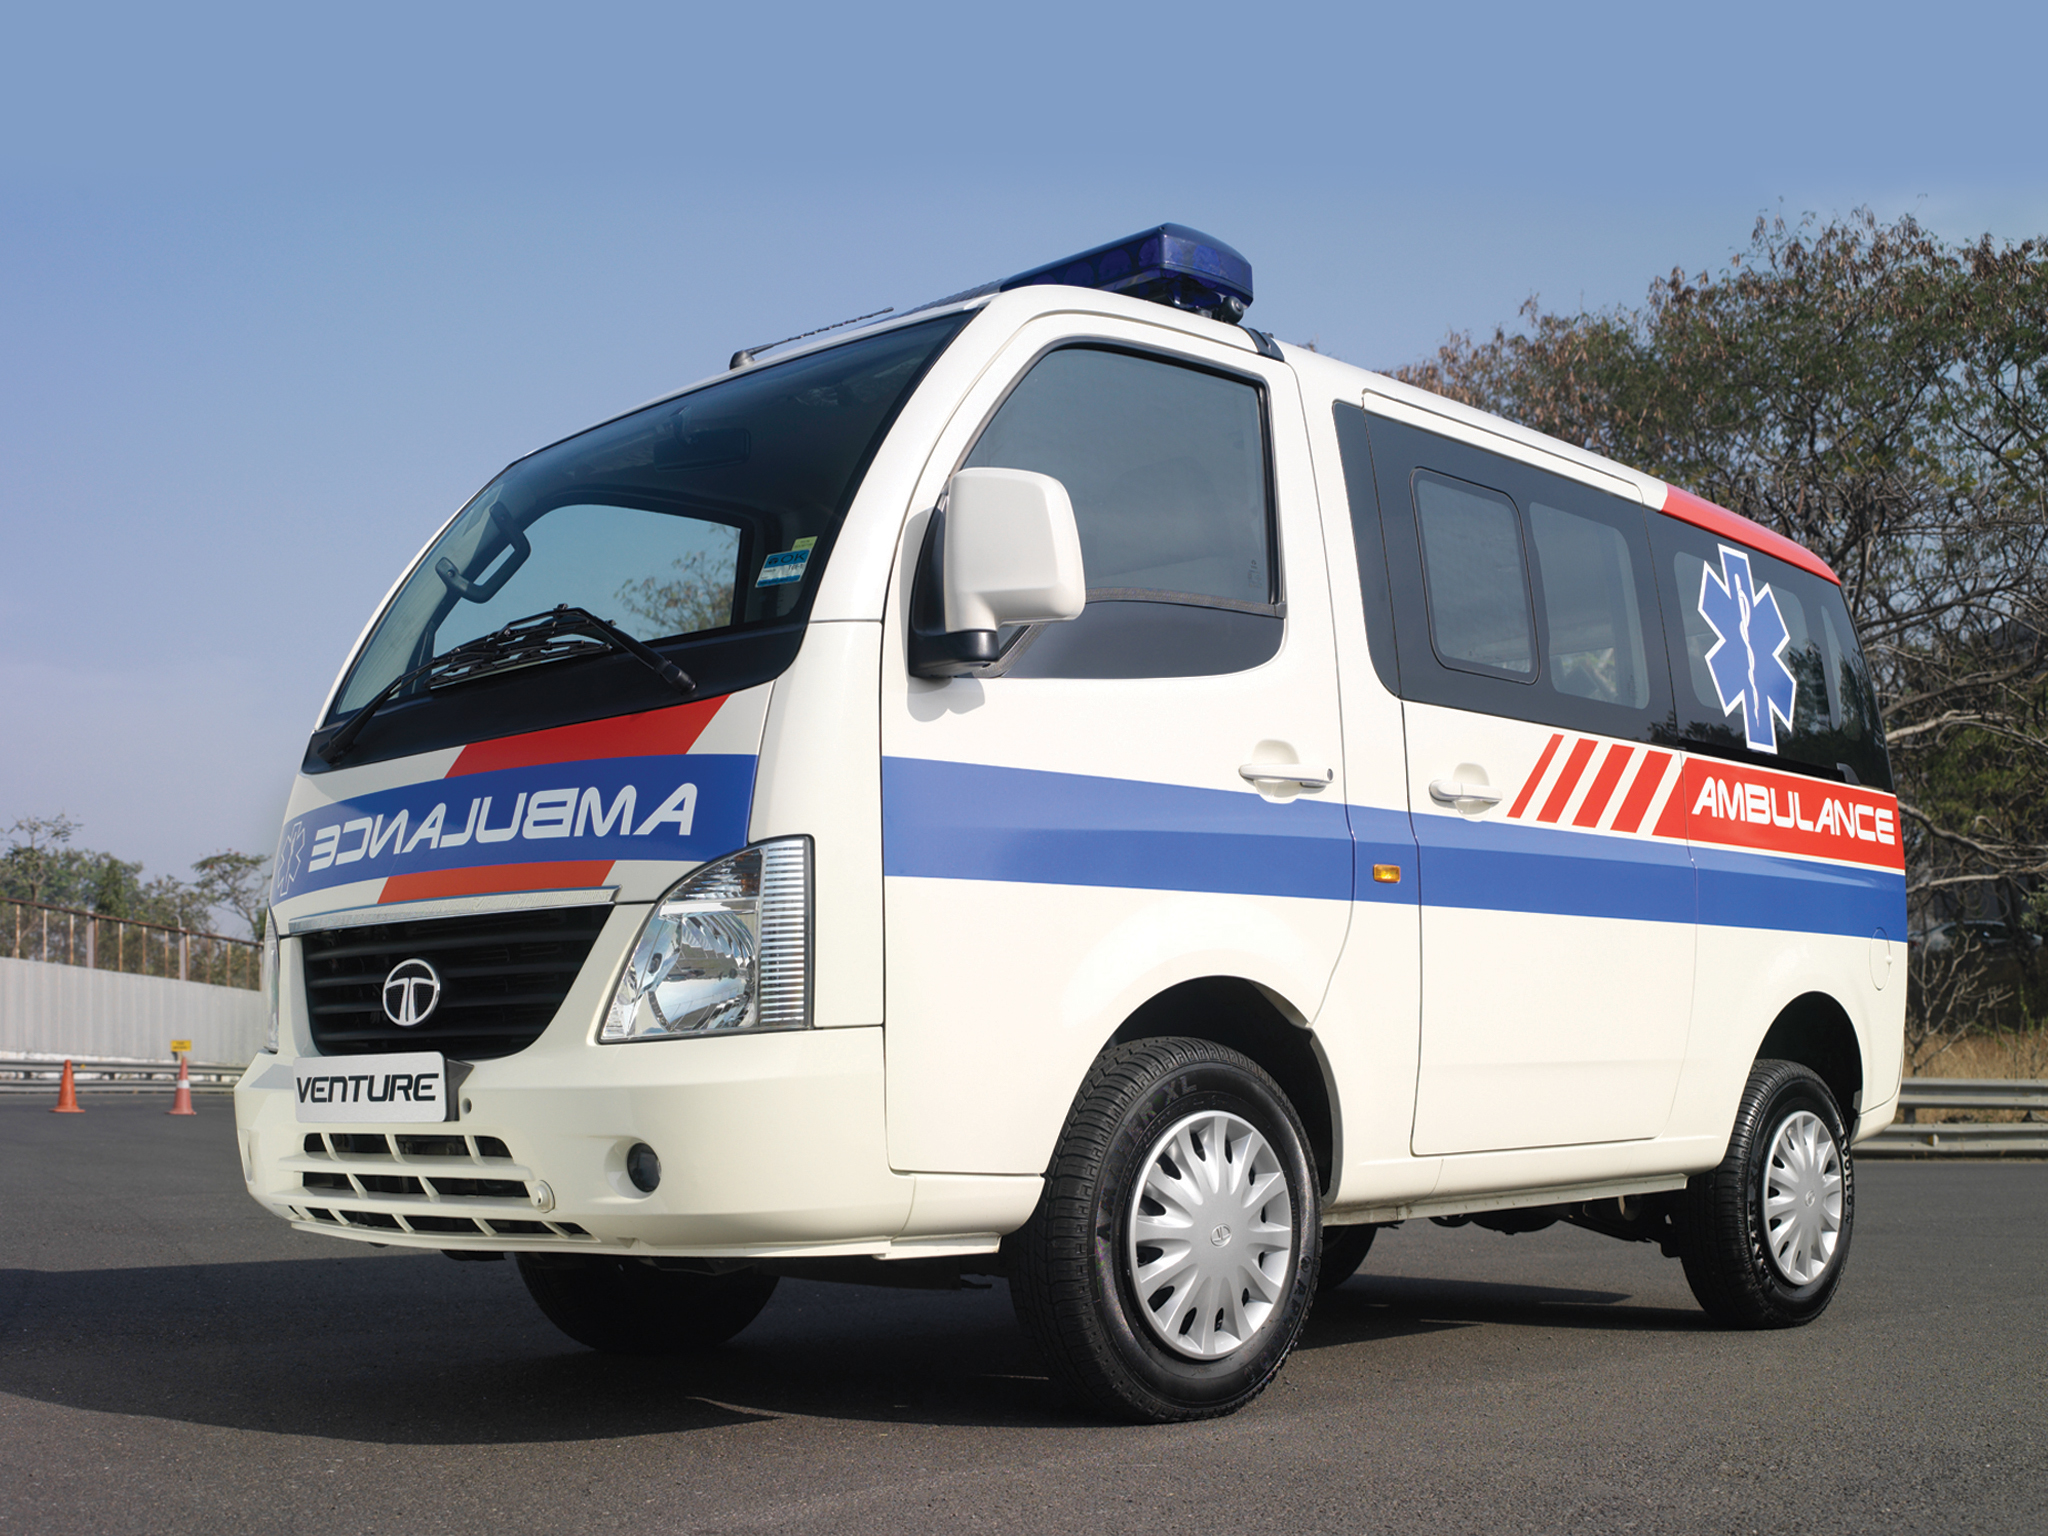 2010 Tata Venture Ambulance emergency wallpaper | 2048x1536